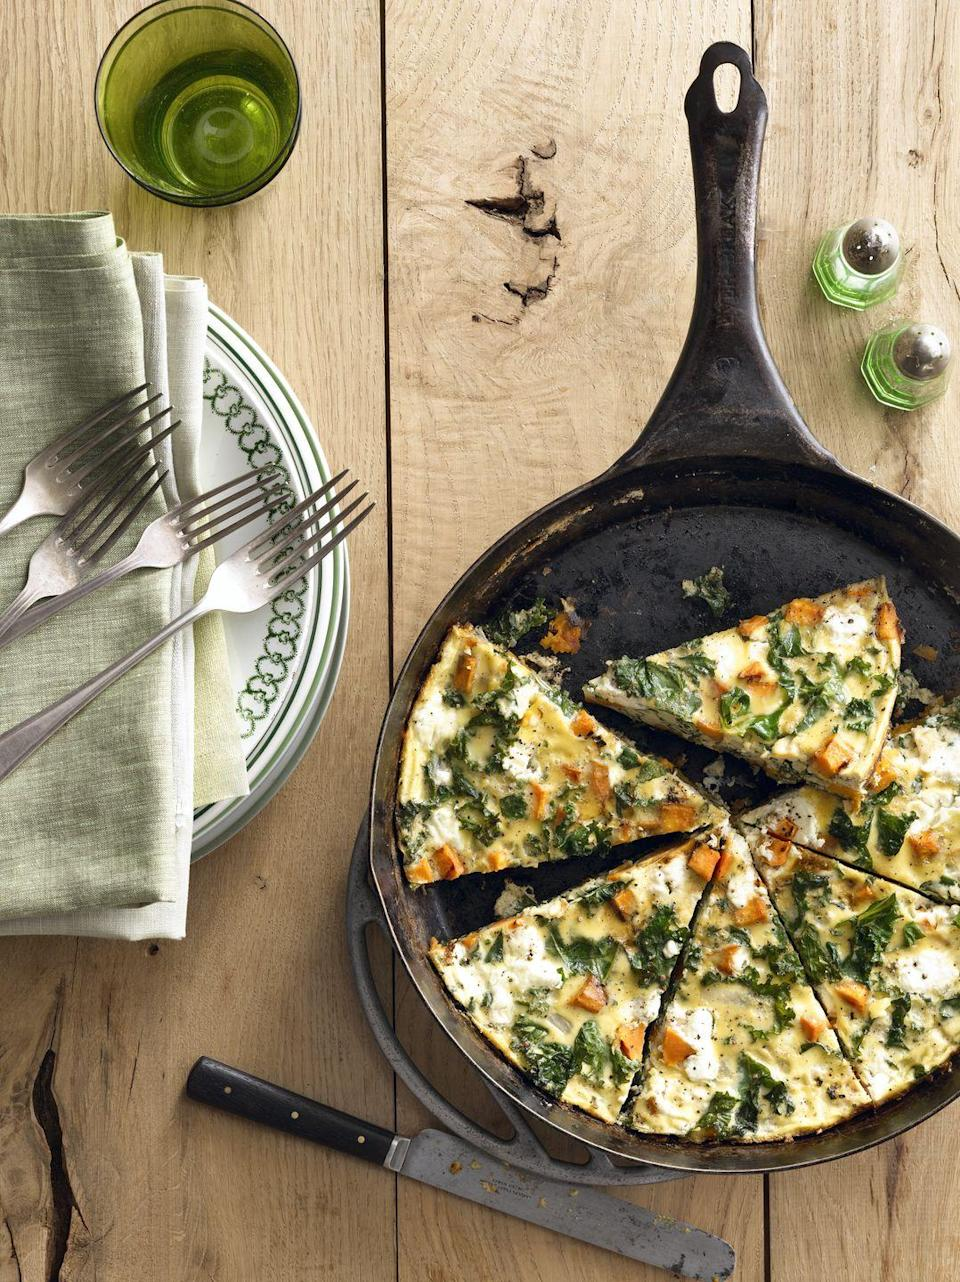 """<p>This easy, eggy dish bakes in the oven for just 10-15 minutes and easily feeds a crowd. What more could you want?</p><p><strong><a href=""""https://www.countryliving.com/food-drinks/recipes/a5502/sweet-potato-kale-frittata-recipe-clx0914/"""" rel=""""nofollow noopener"""" target=""""_blank"""" data-ylk=""""slk:Get the recipe"""" class=""""link rapid-noclick-resp"""">Get the recipe</a>.</strong></p><p><strong><a class=""""link rapid-noclick-resp"""" href=""""https://www.amazon.com/GreaterGoods-Skillet-Pre-Seasoned-handmade-Certified/dp/B07PP9TPRZ/?tag=syn-yahoo-20&ascsubtag=%5Bartid%7C10050.g.2144%5Bsrc%7Cyahoo-us"""" rel=""""nofollow noopener"""" target=""""_blank"""" data-ylk=""""slk:SHOP SKILLETS"""">SHOP SKILLETS</a><br></strong></p>"""